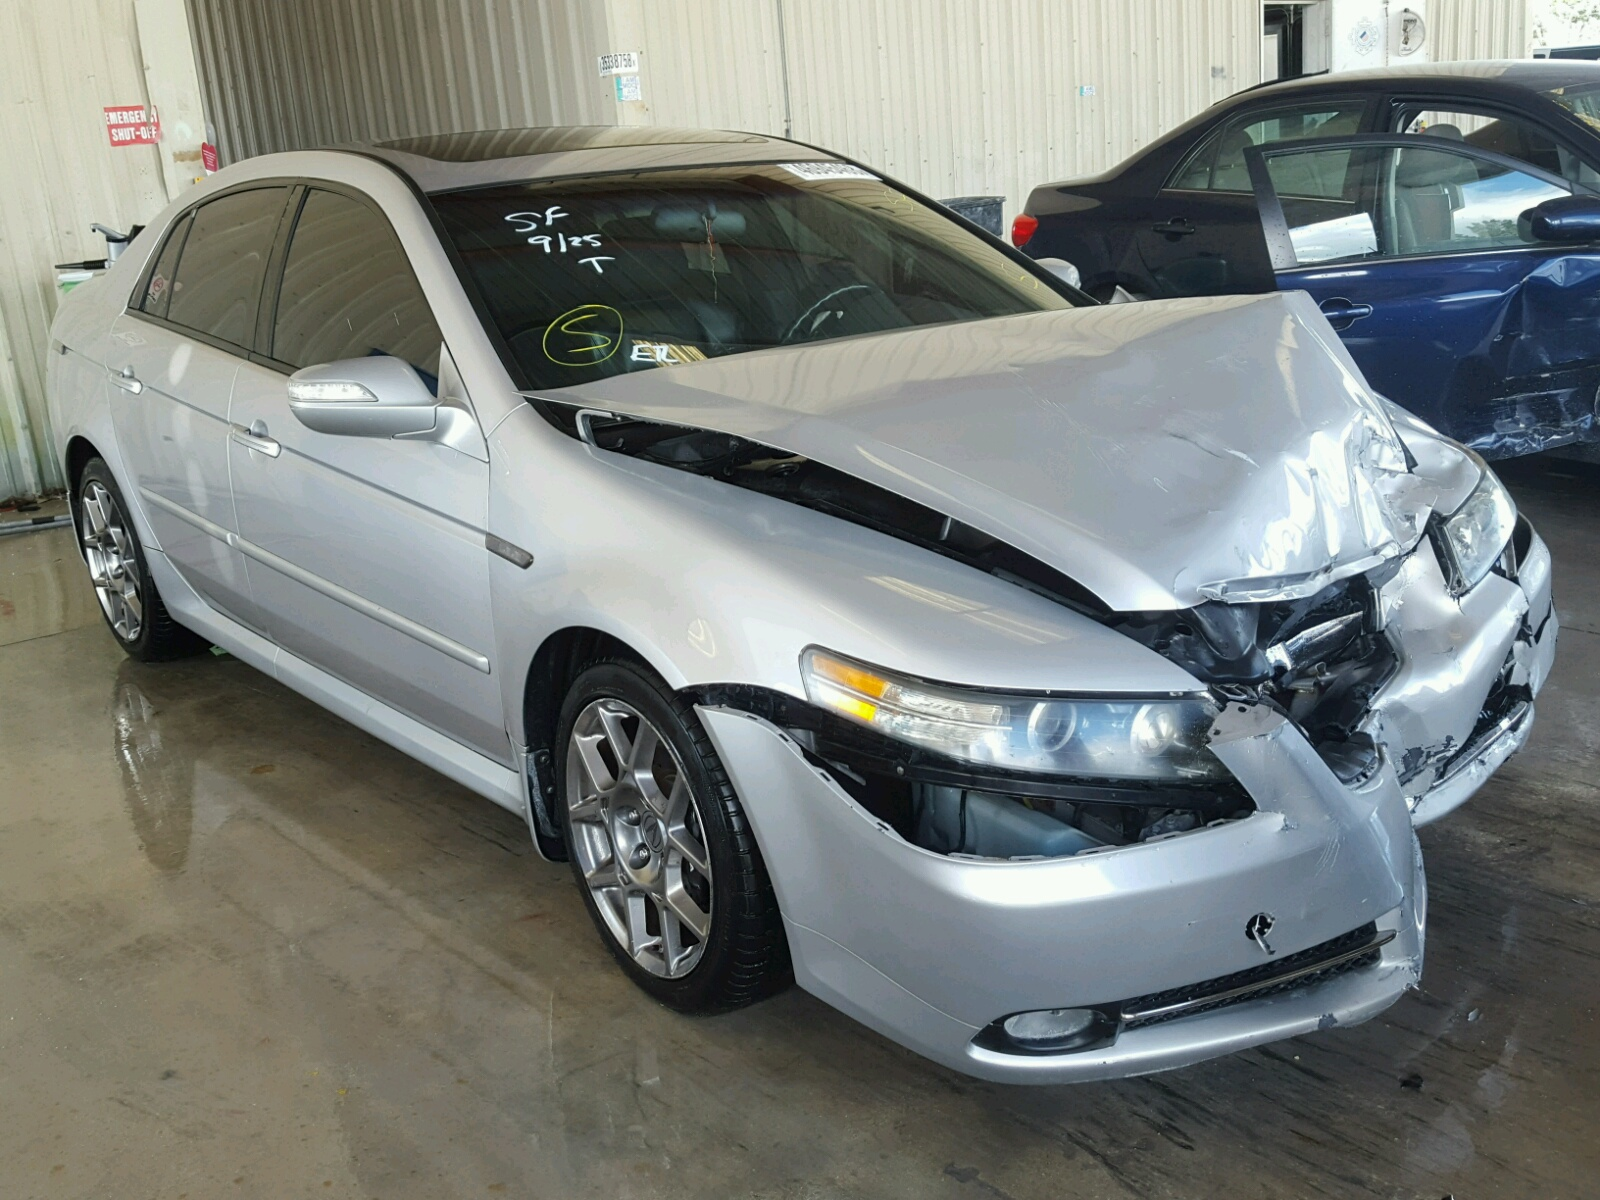 Acura TL Type S For Sale At Copart Homestead FL Lot - 08 acura tl type s for sale